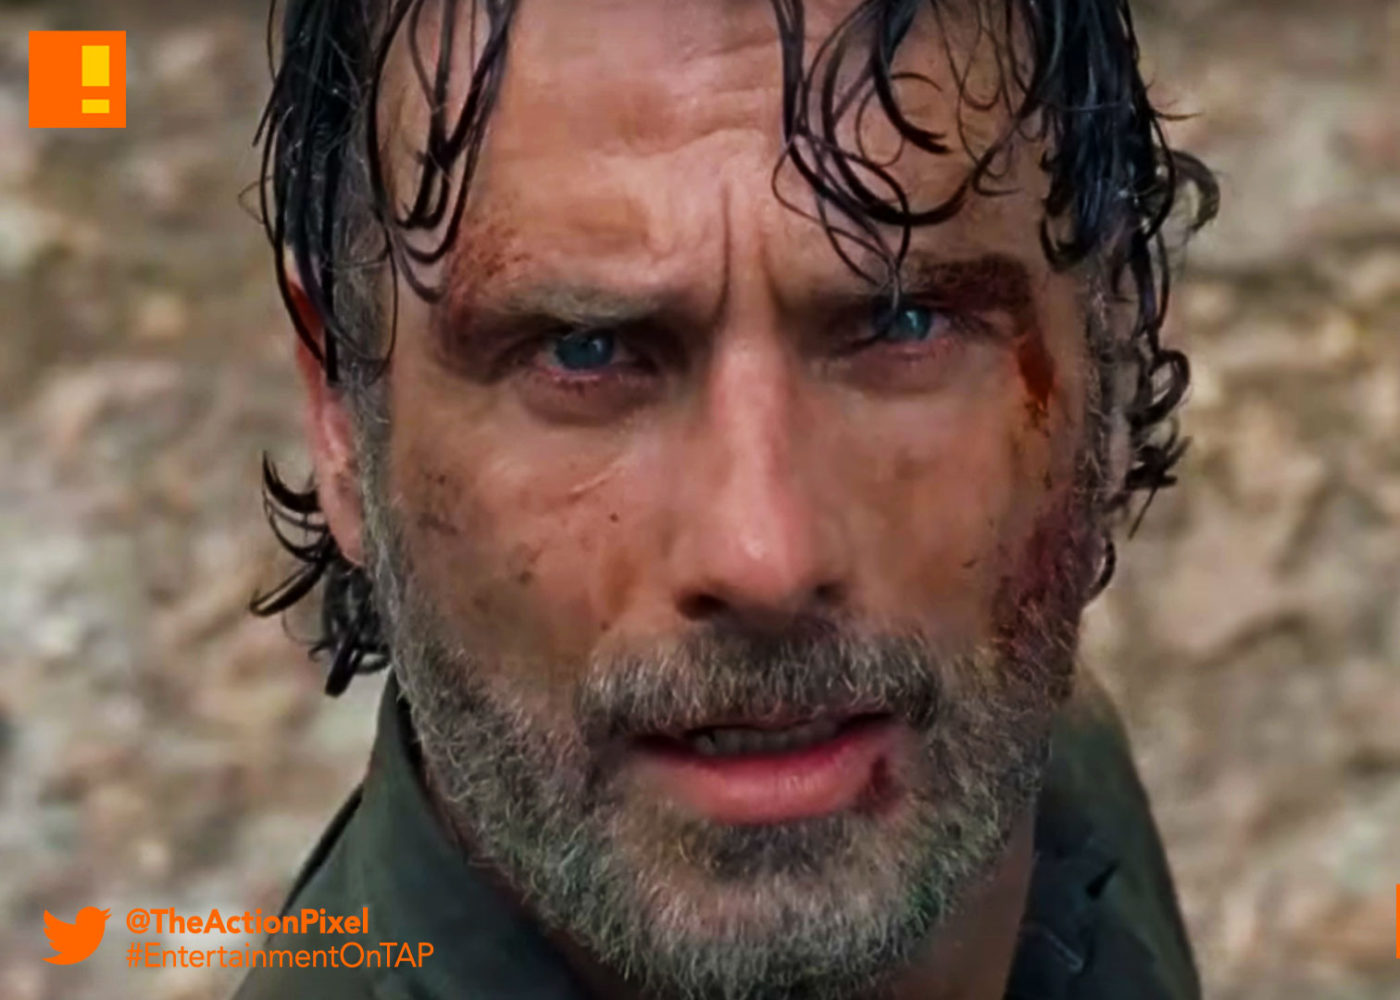 twd, season 8, the walking dead, s 8, negan, the action pixel, the walking dead, entertainment on tap,